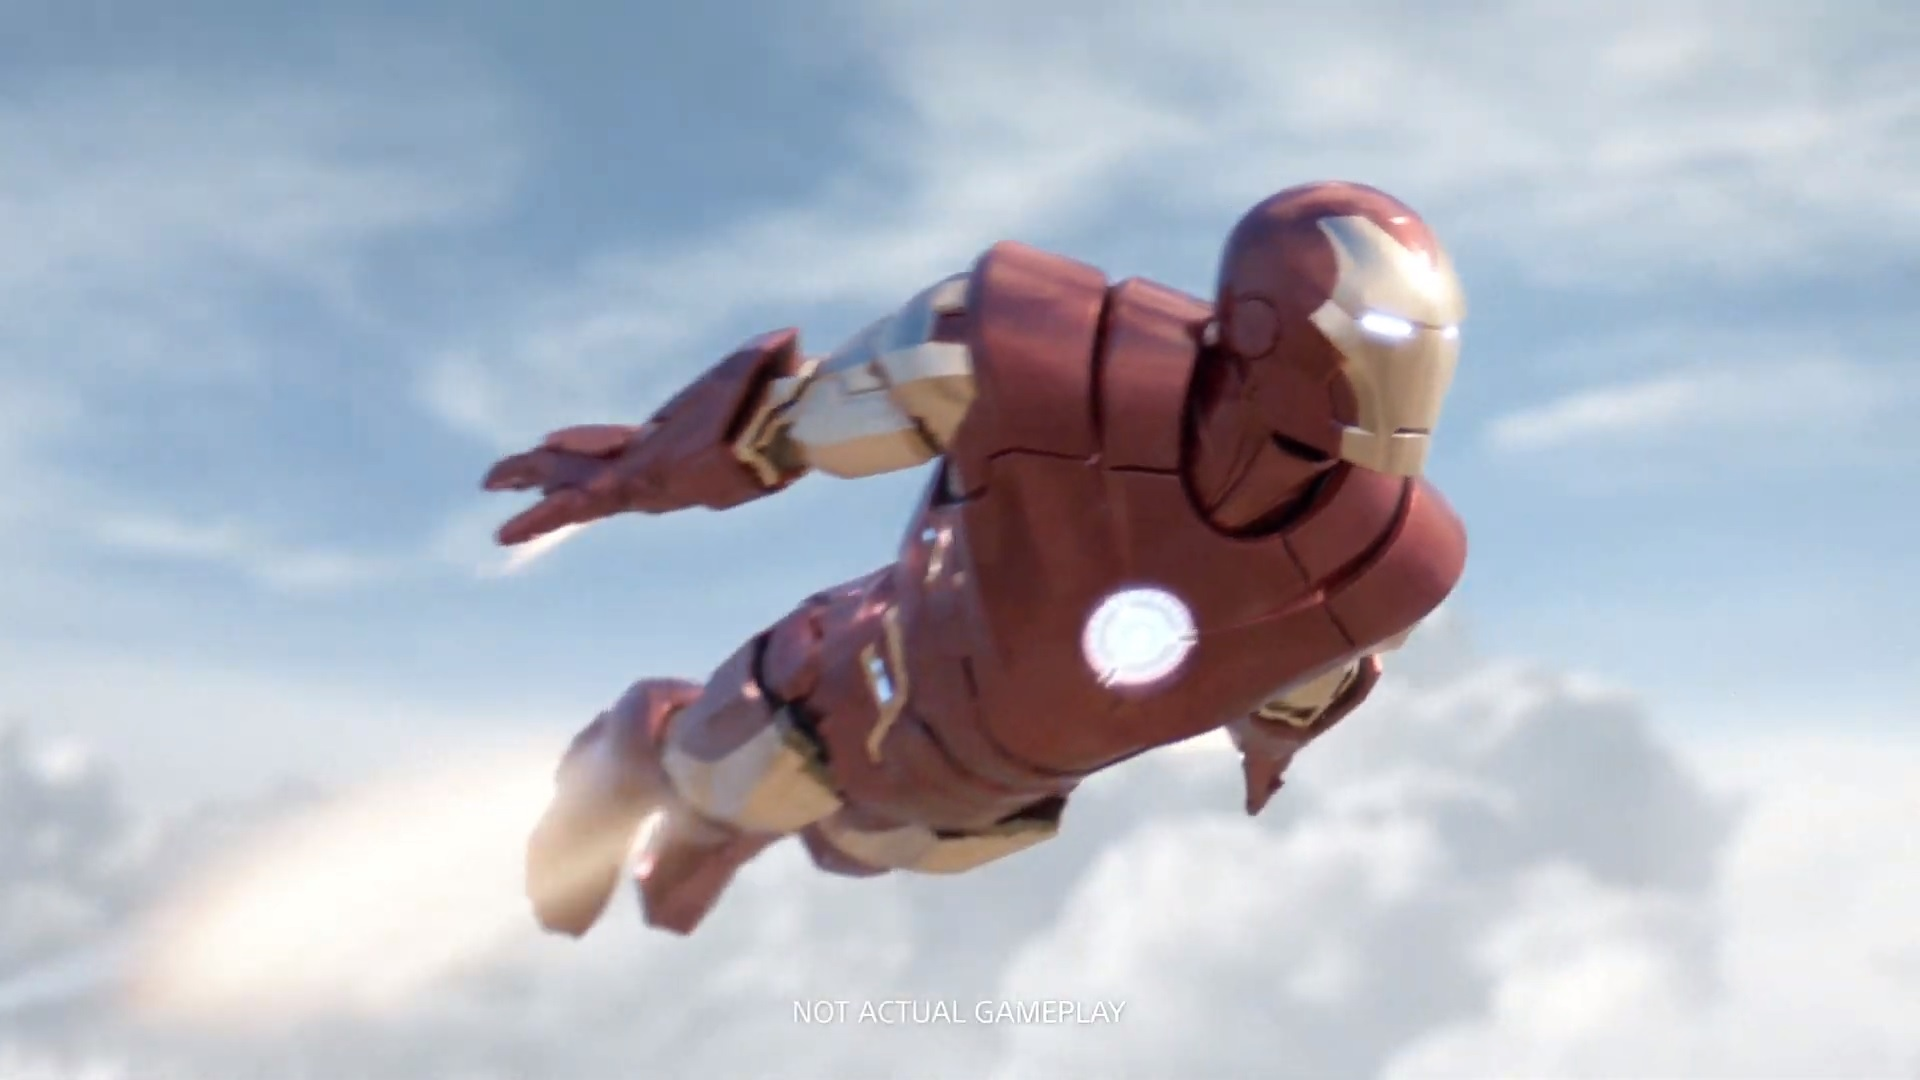 Become an Avenger with Iron Man VR